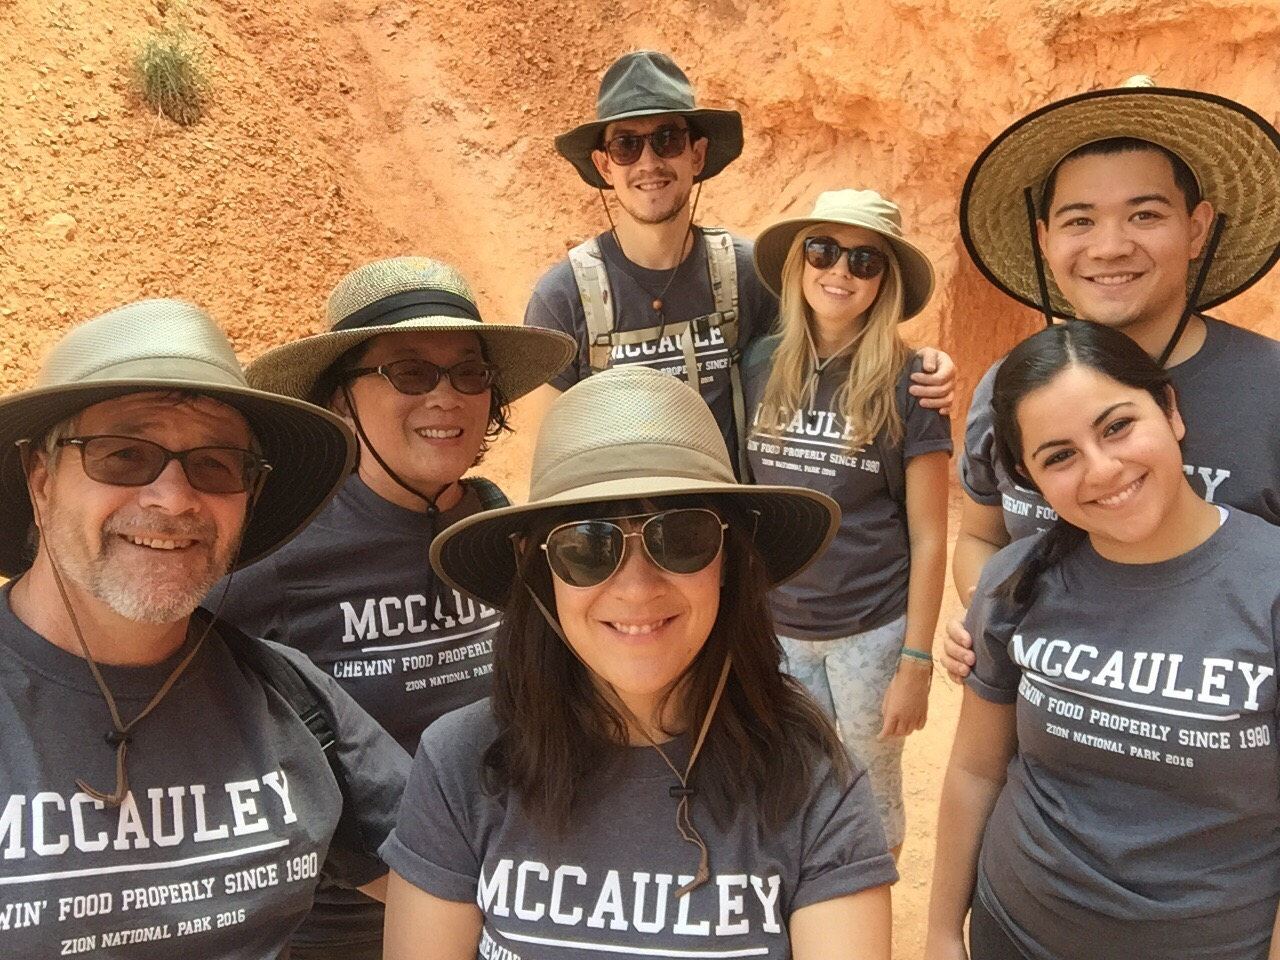 Shirt design utah - Showin Our Mccauley Family Pride On Our Vacation To Utah This Year T Shirt